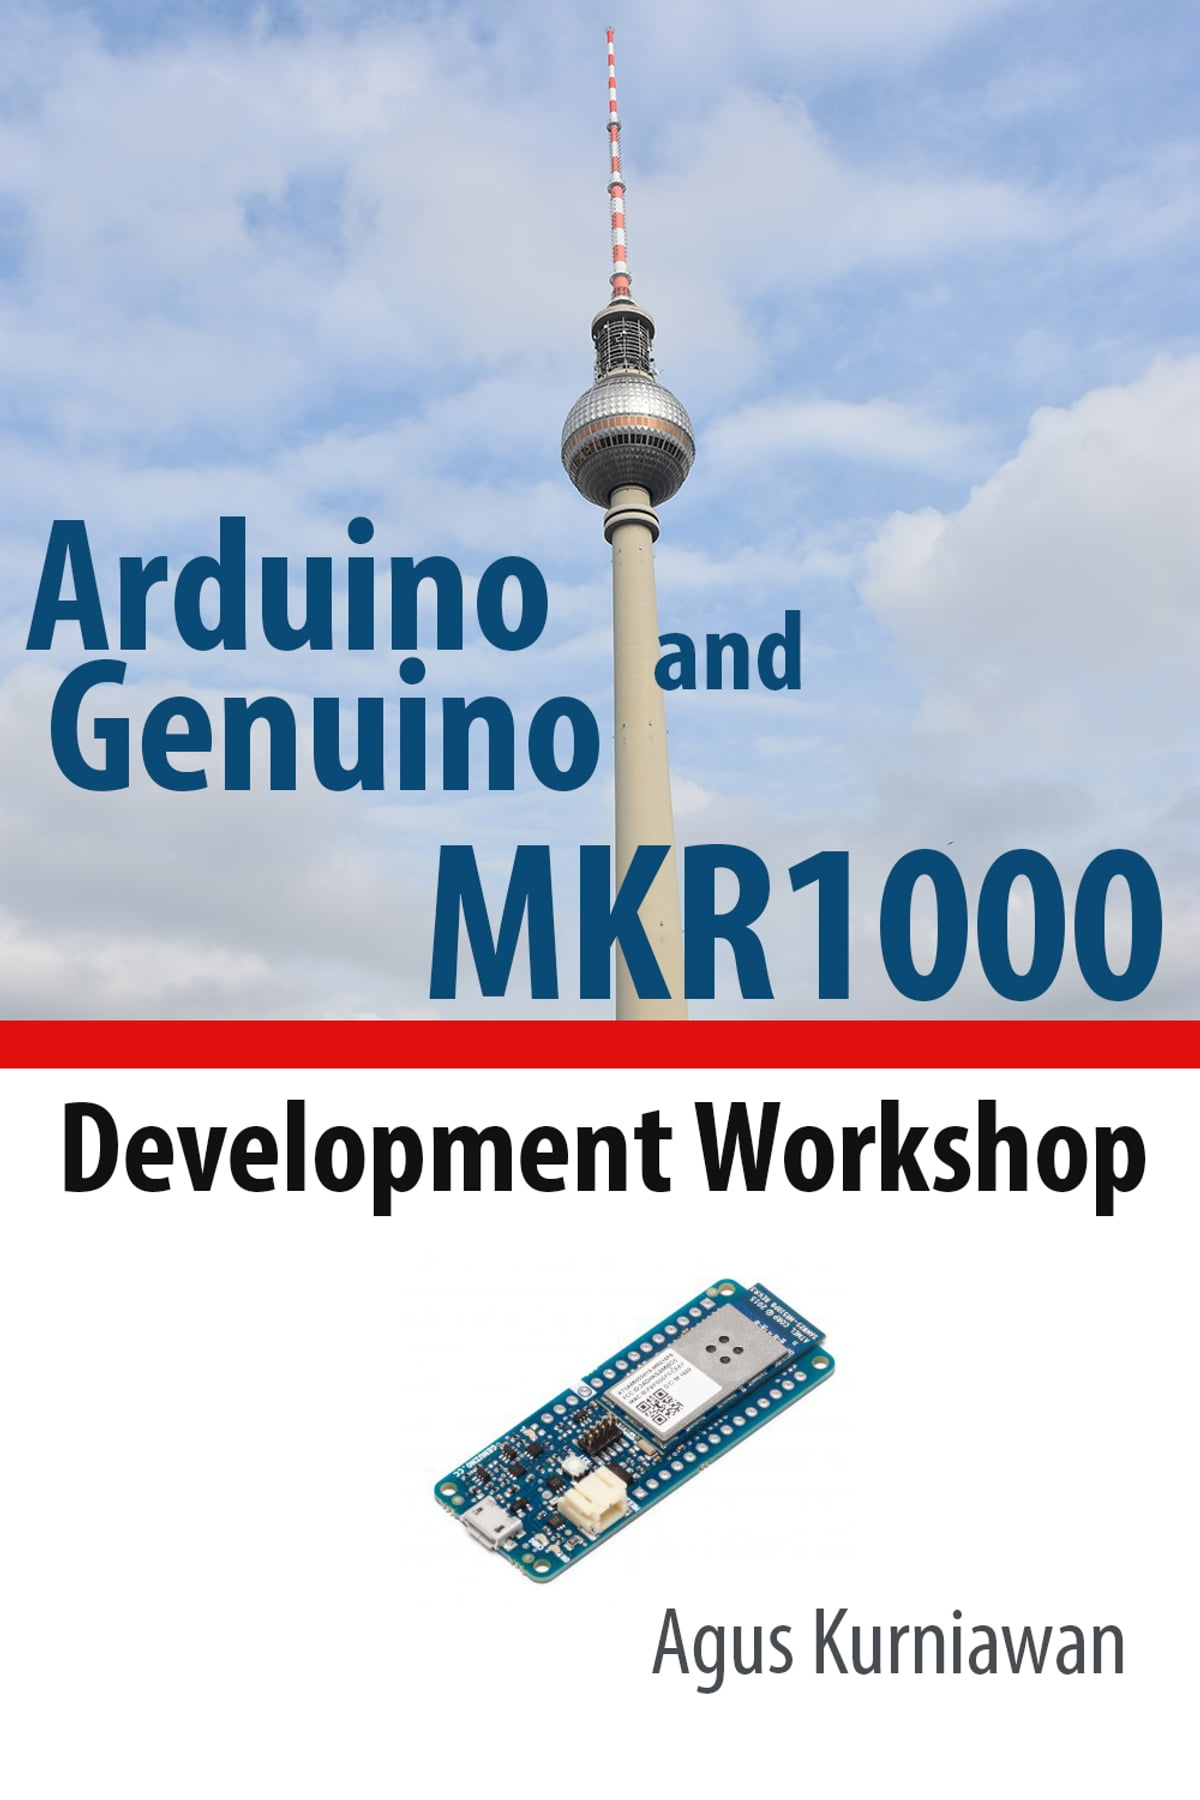 Arduino and genuino mkr1000 development workshop ebook by agus arduino and genuino mkr1000 development workshop ebook by agus kurniawan 1230001030129 rakuten kobo fandeluxe Image collections